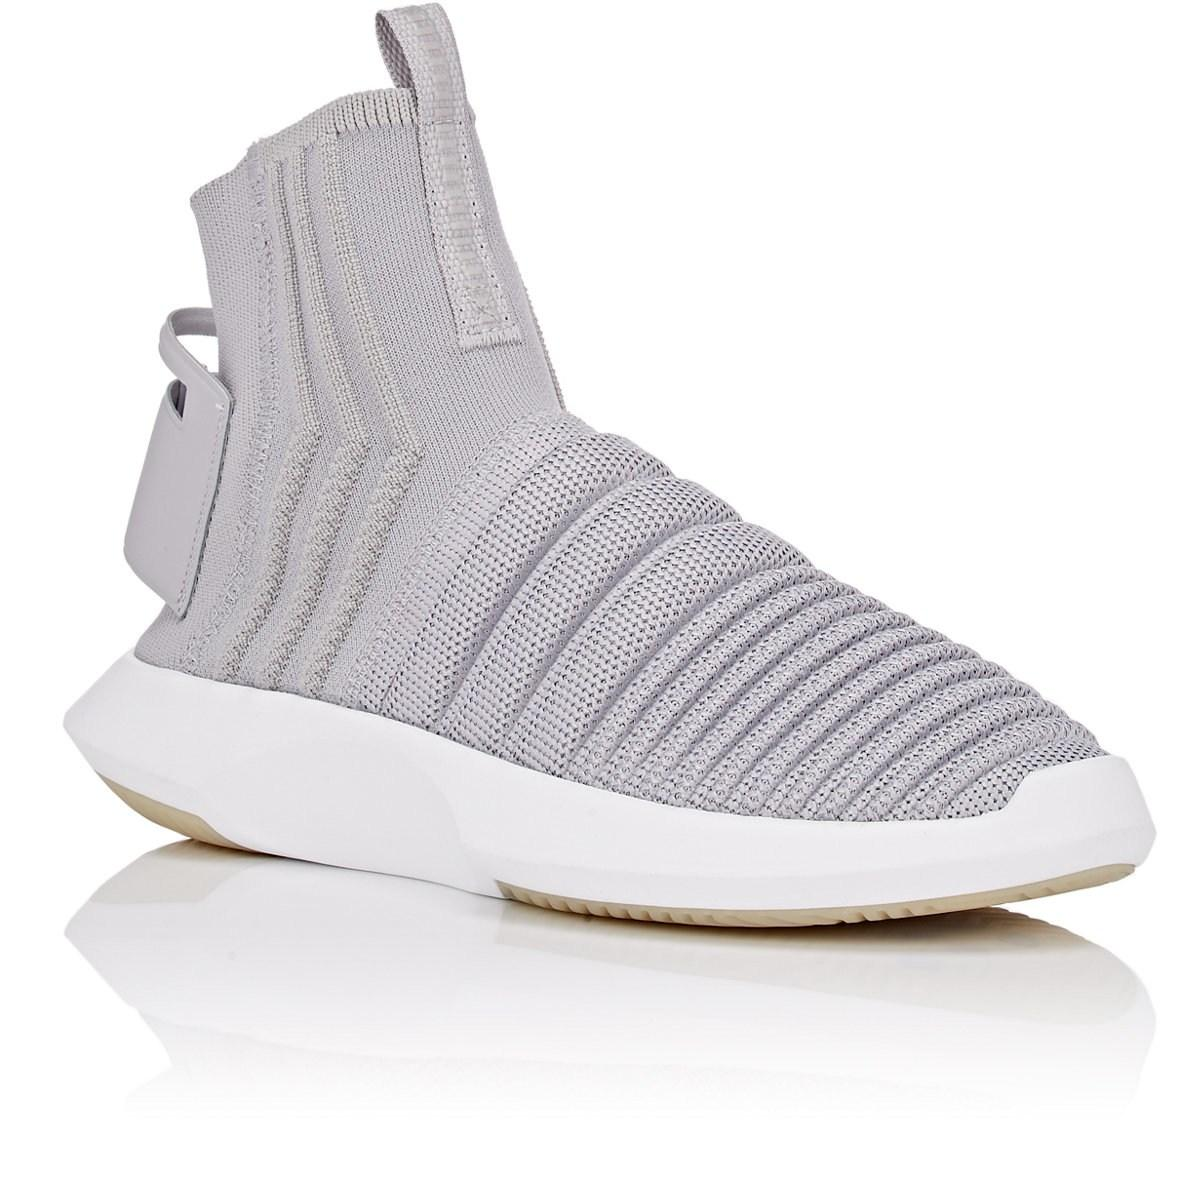 on sale 4a2a6 556a9 Adidas - Gray Crazy 1 Adv Sock Primeknit Sneakers for Men - Lyst. View  fullscreen